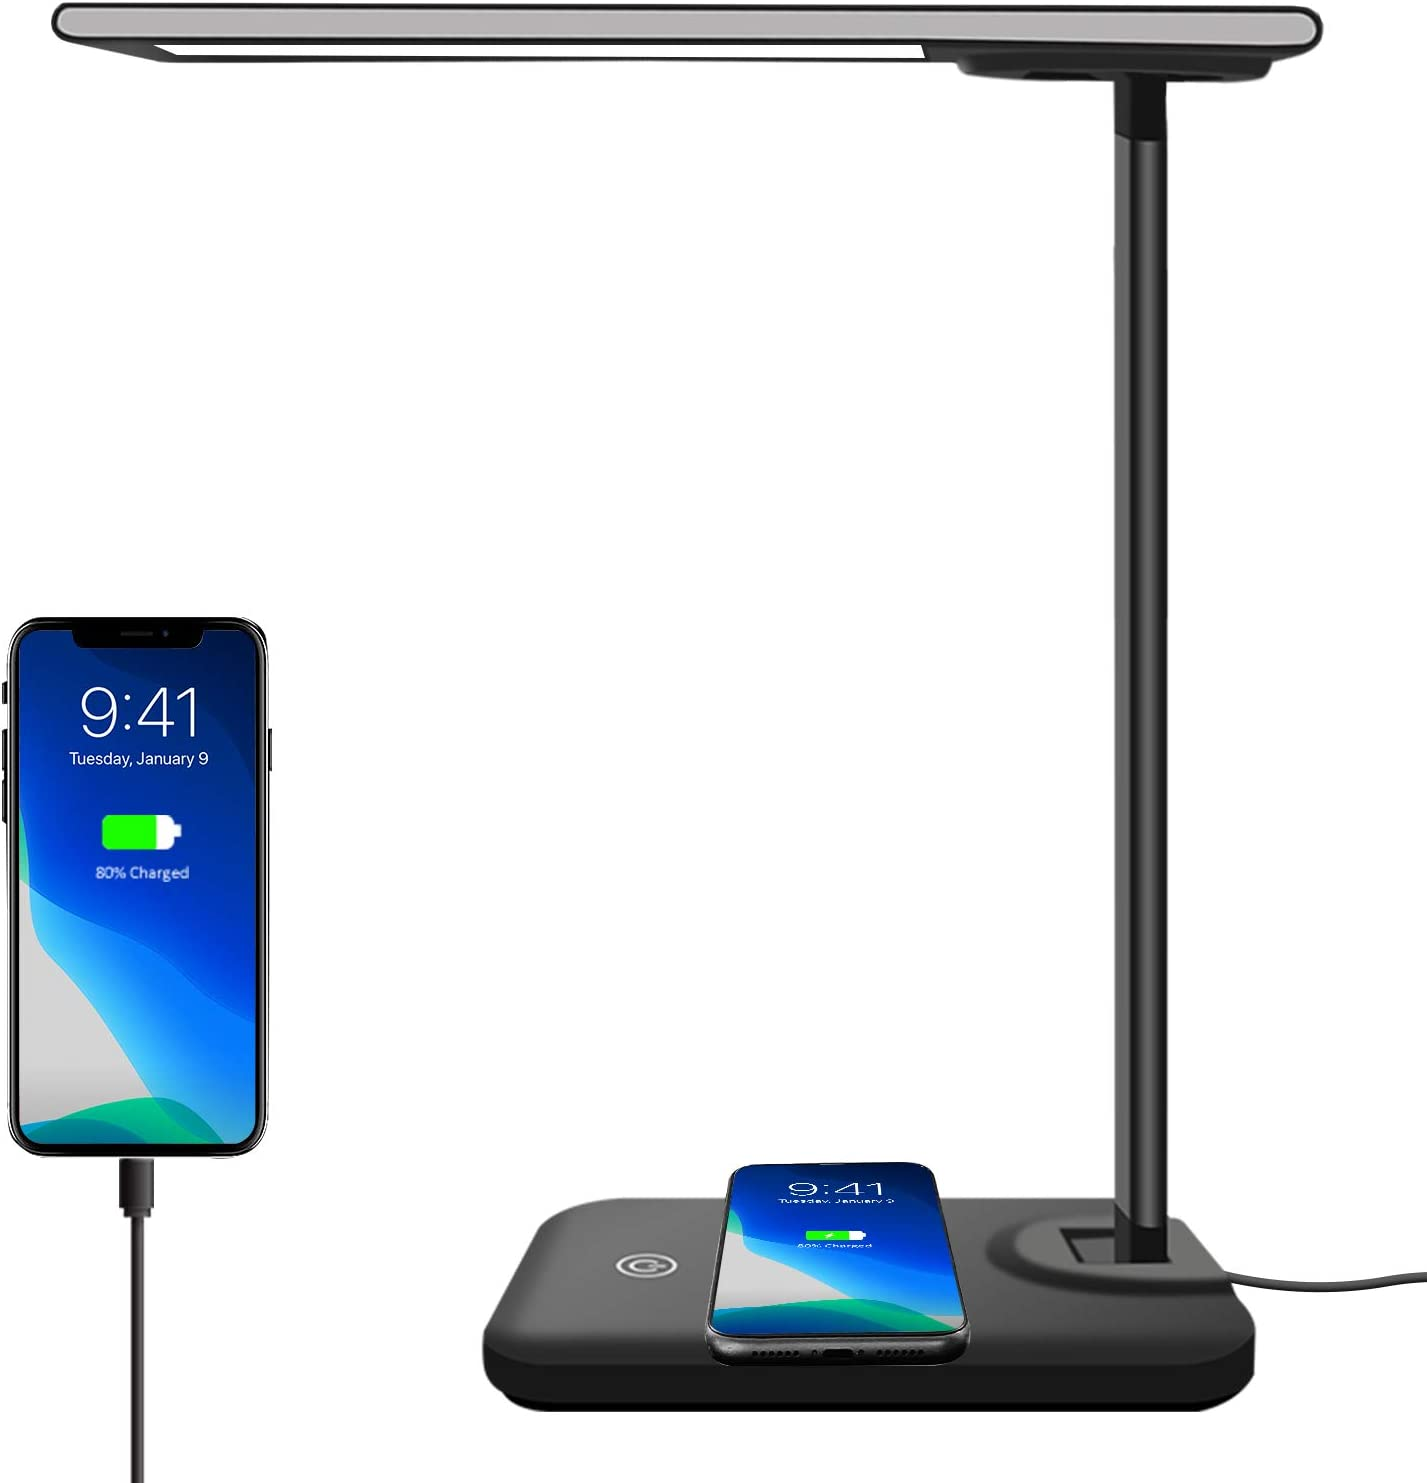 AOBISI LED Desk Lamp with Wireless Charger,Dimmable Office Lamp with USB Charging Port,Wireless Charging,Touch Control,3 Lighting Modes 6 Brightness Levels,Eye-Caring Table Lamp (Adapter Included)